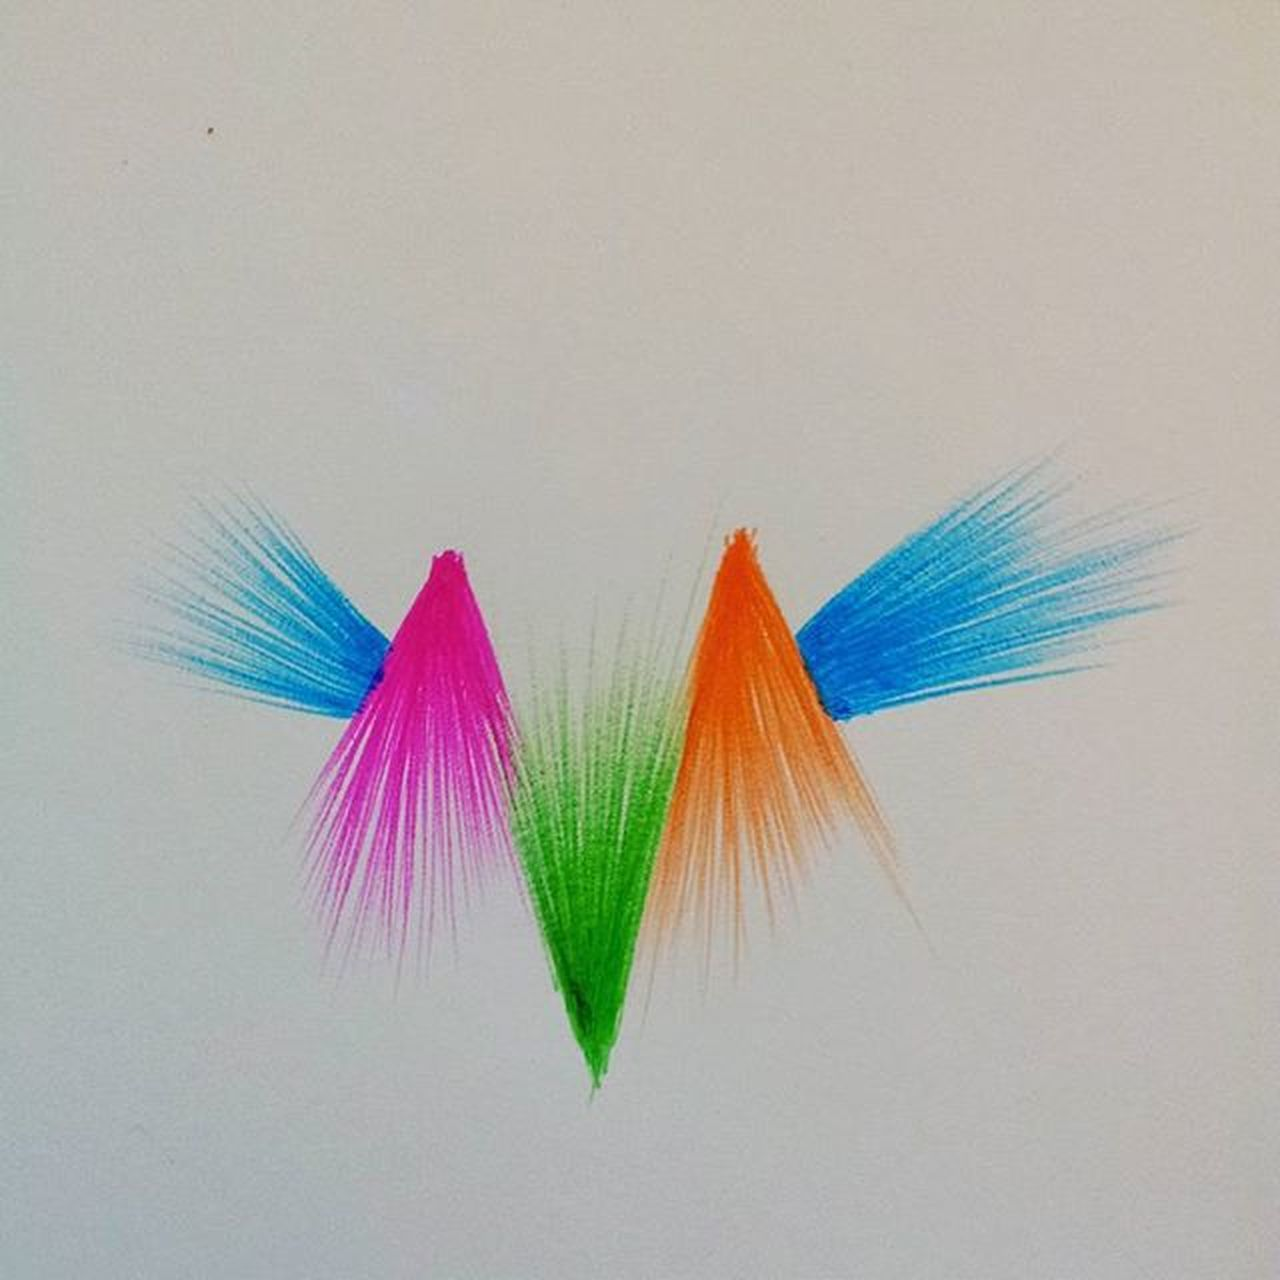 Blue Pink Orange Green Drawingshades Drawing Future Surreal Shadows Shades Abstractlandscape Abstract Abstractartist Abstractdrawing Artbaselmiami Art Artist Artopening Artgallery Instadream Quotes Quote ArtLife Artdrawing